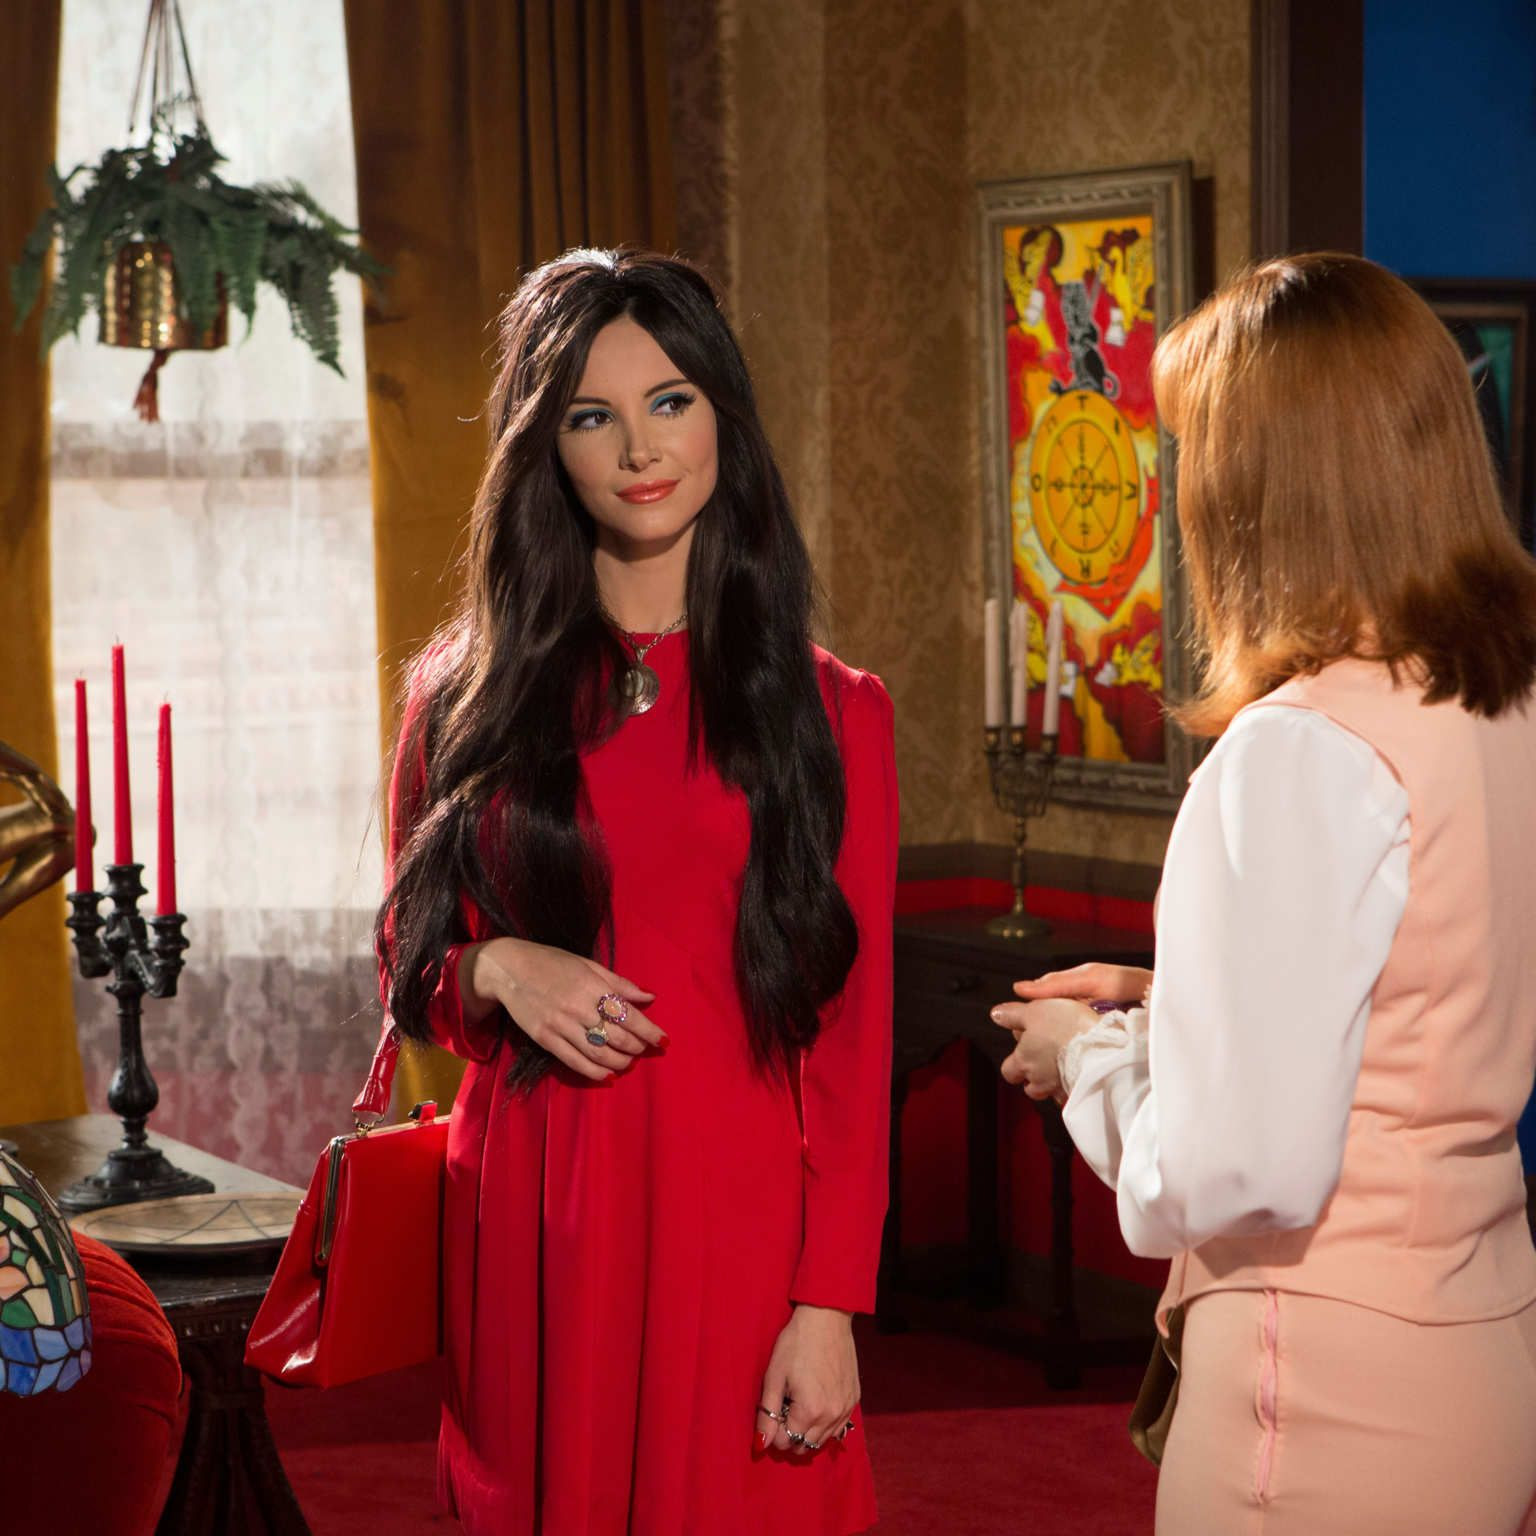 The Love Witch Halloween Costume